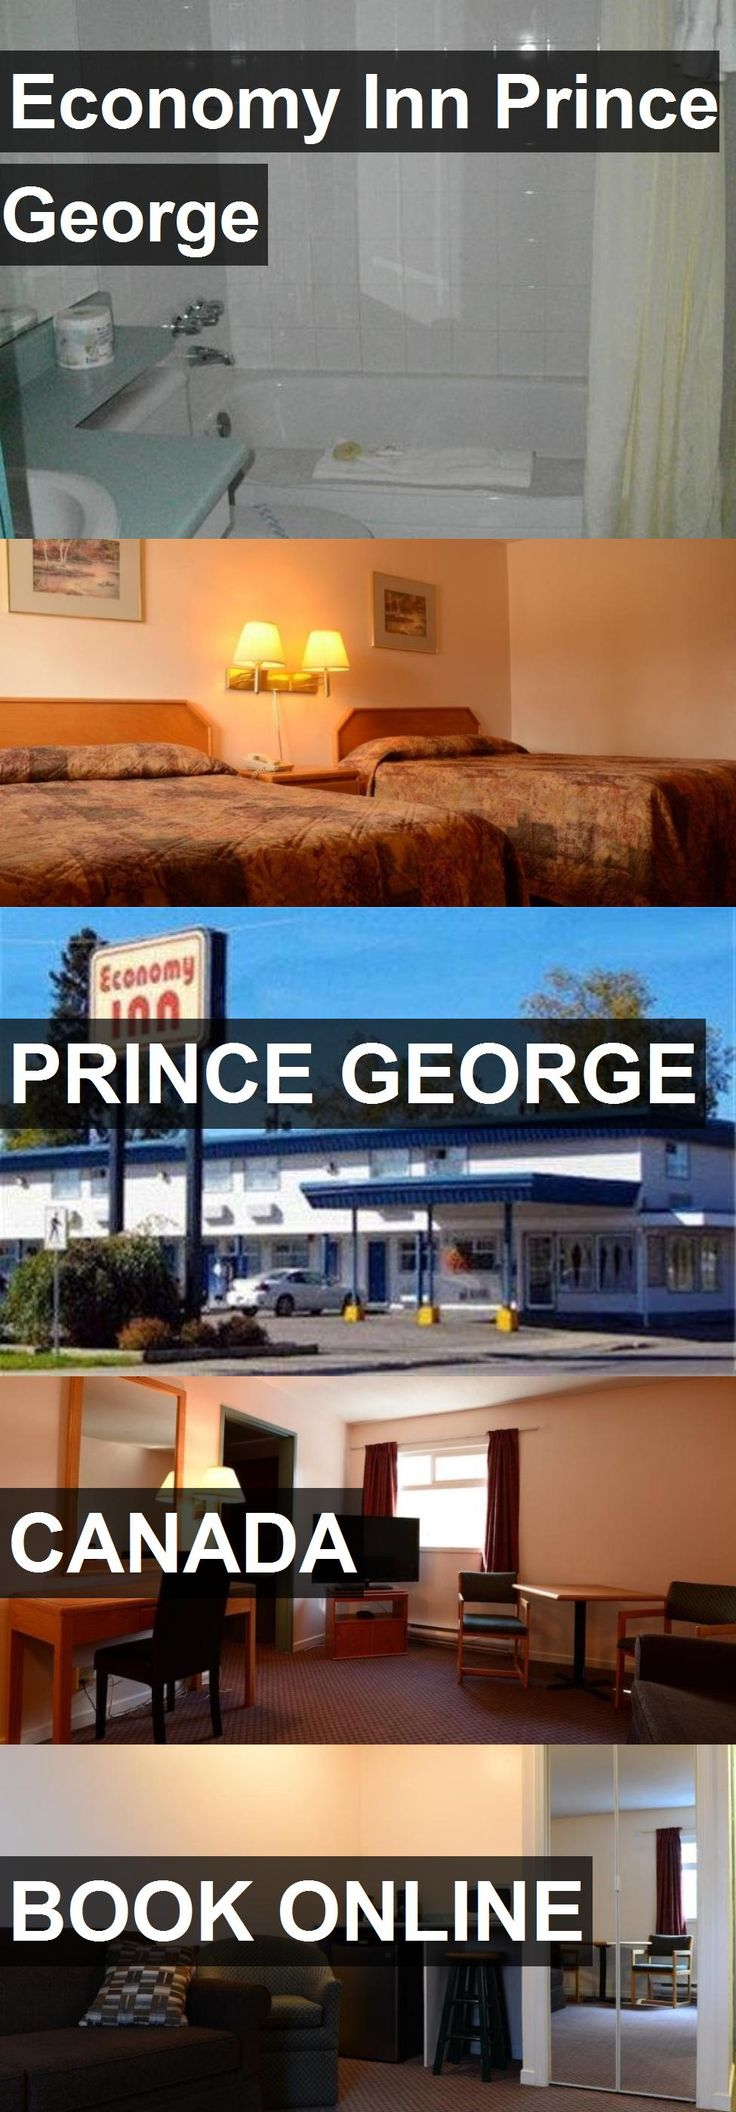 Hotel Economy Inn Prince George in Prince George, Canada. For more information, photos, reviews and best prices please follow the link. #Canada #PrinceGeorge #EconomyInnPrinceGeorge #hotel #travel #vacation